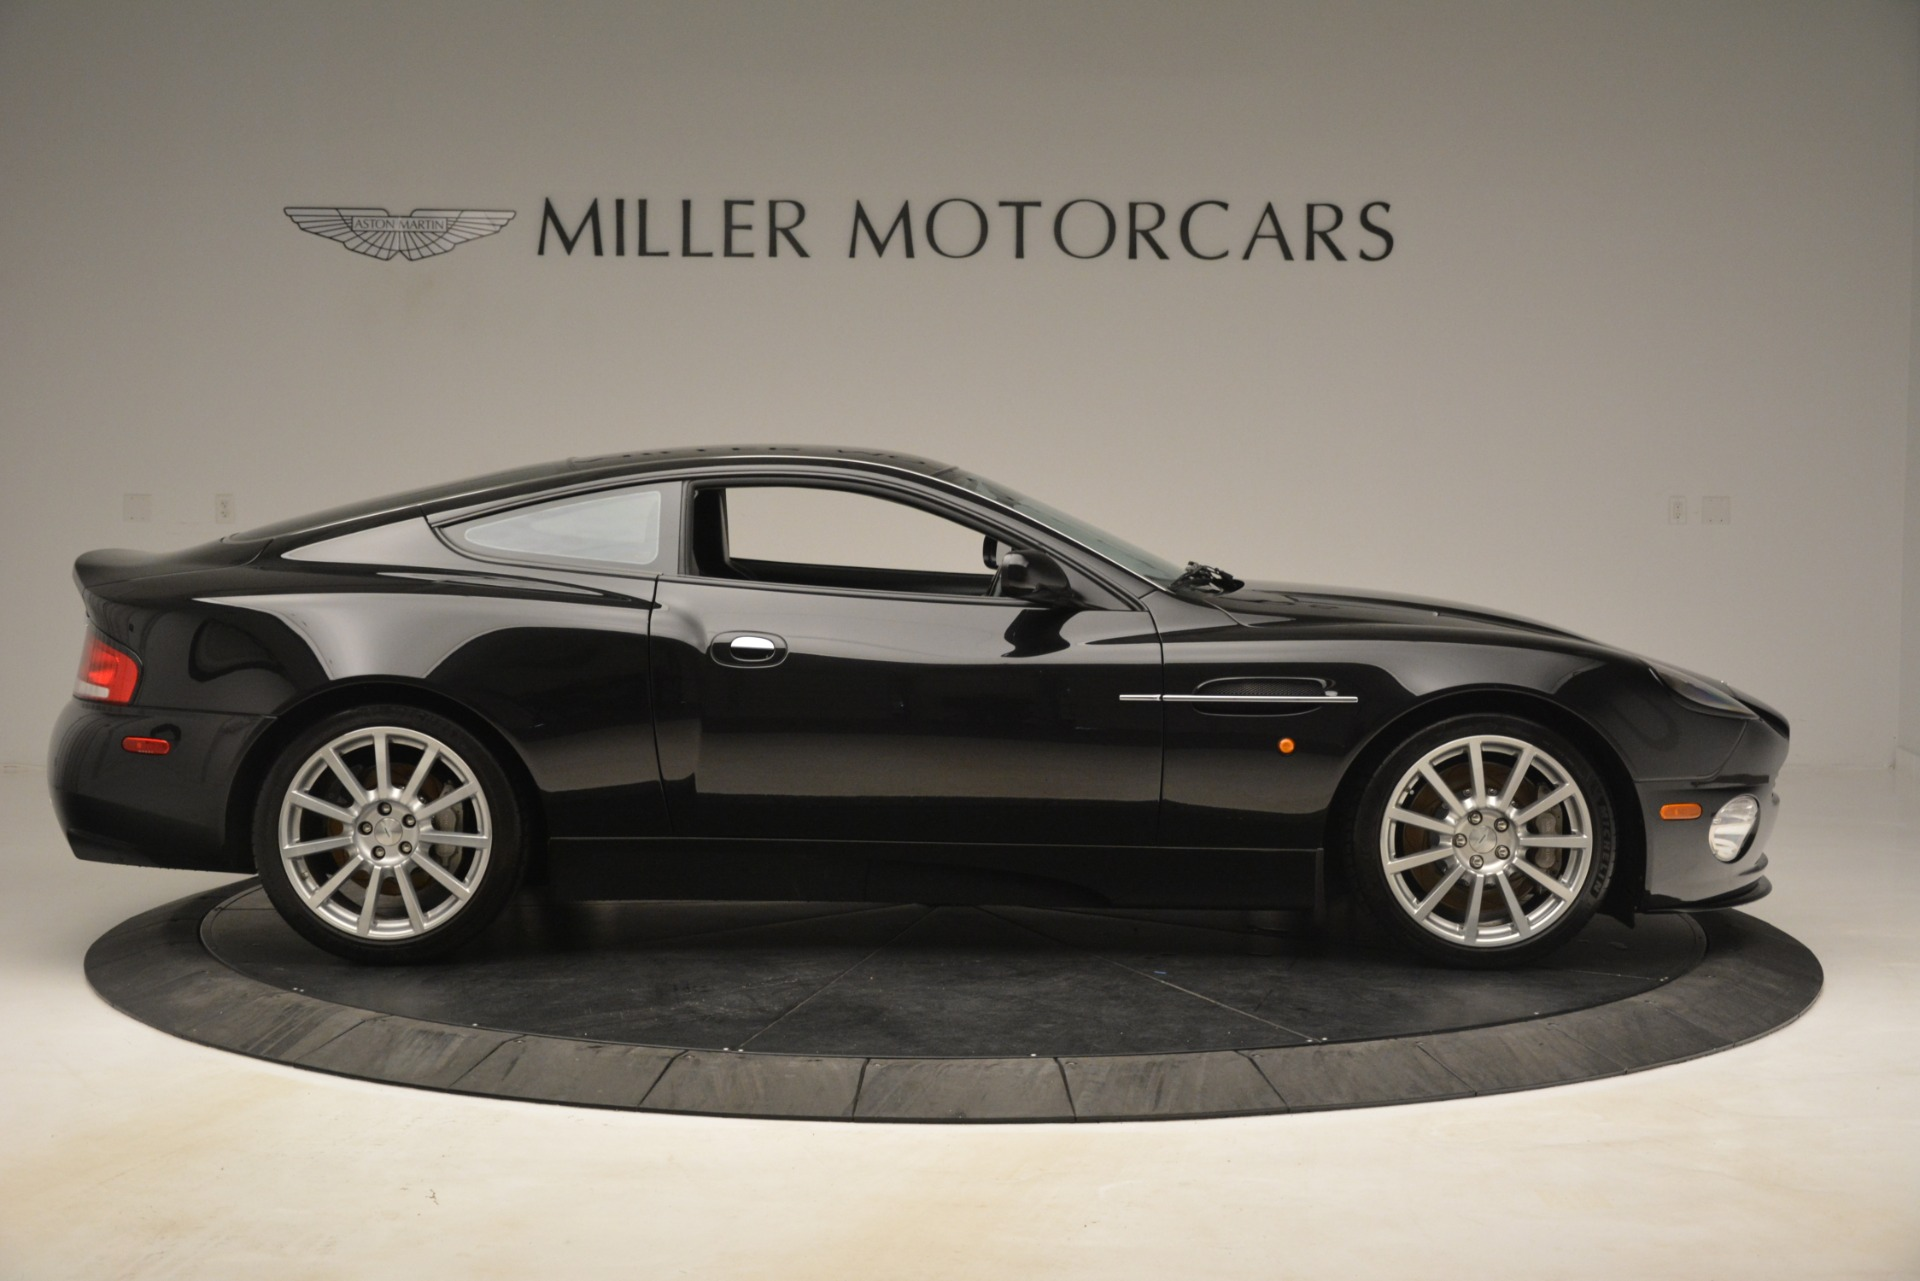 Used 2005 Aston Martin V12 Vanquish S For Sale In Greenwich, CT 3218_p9